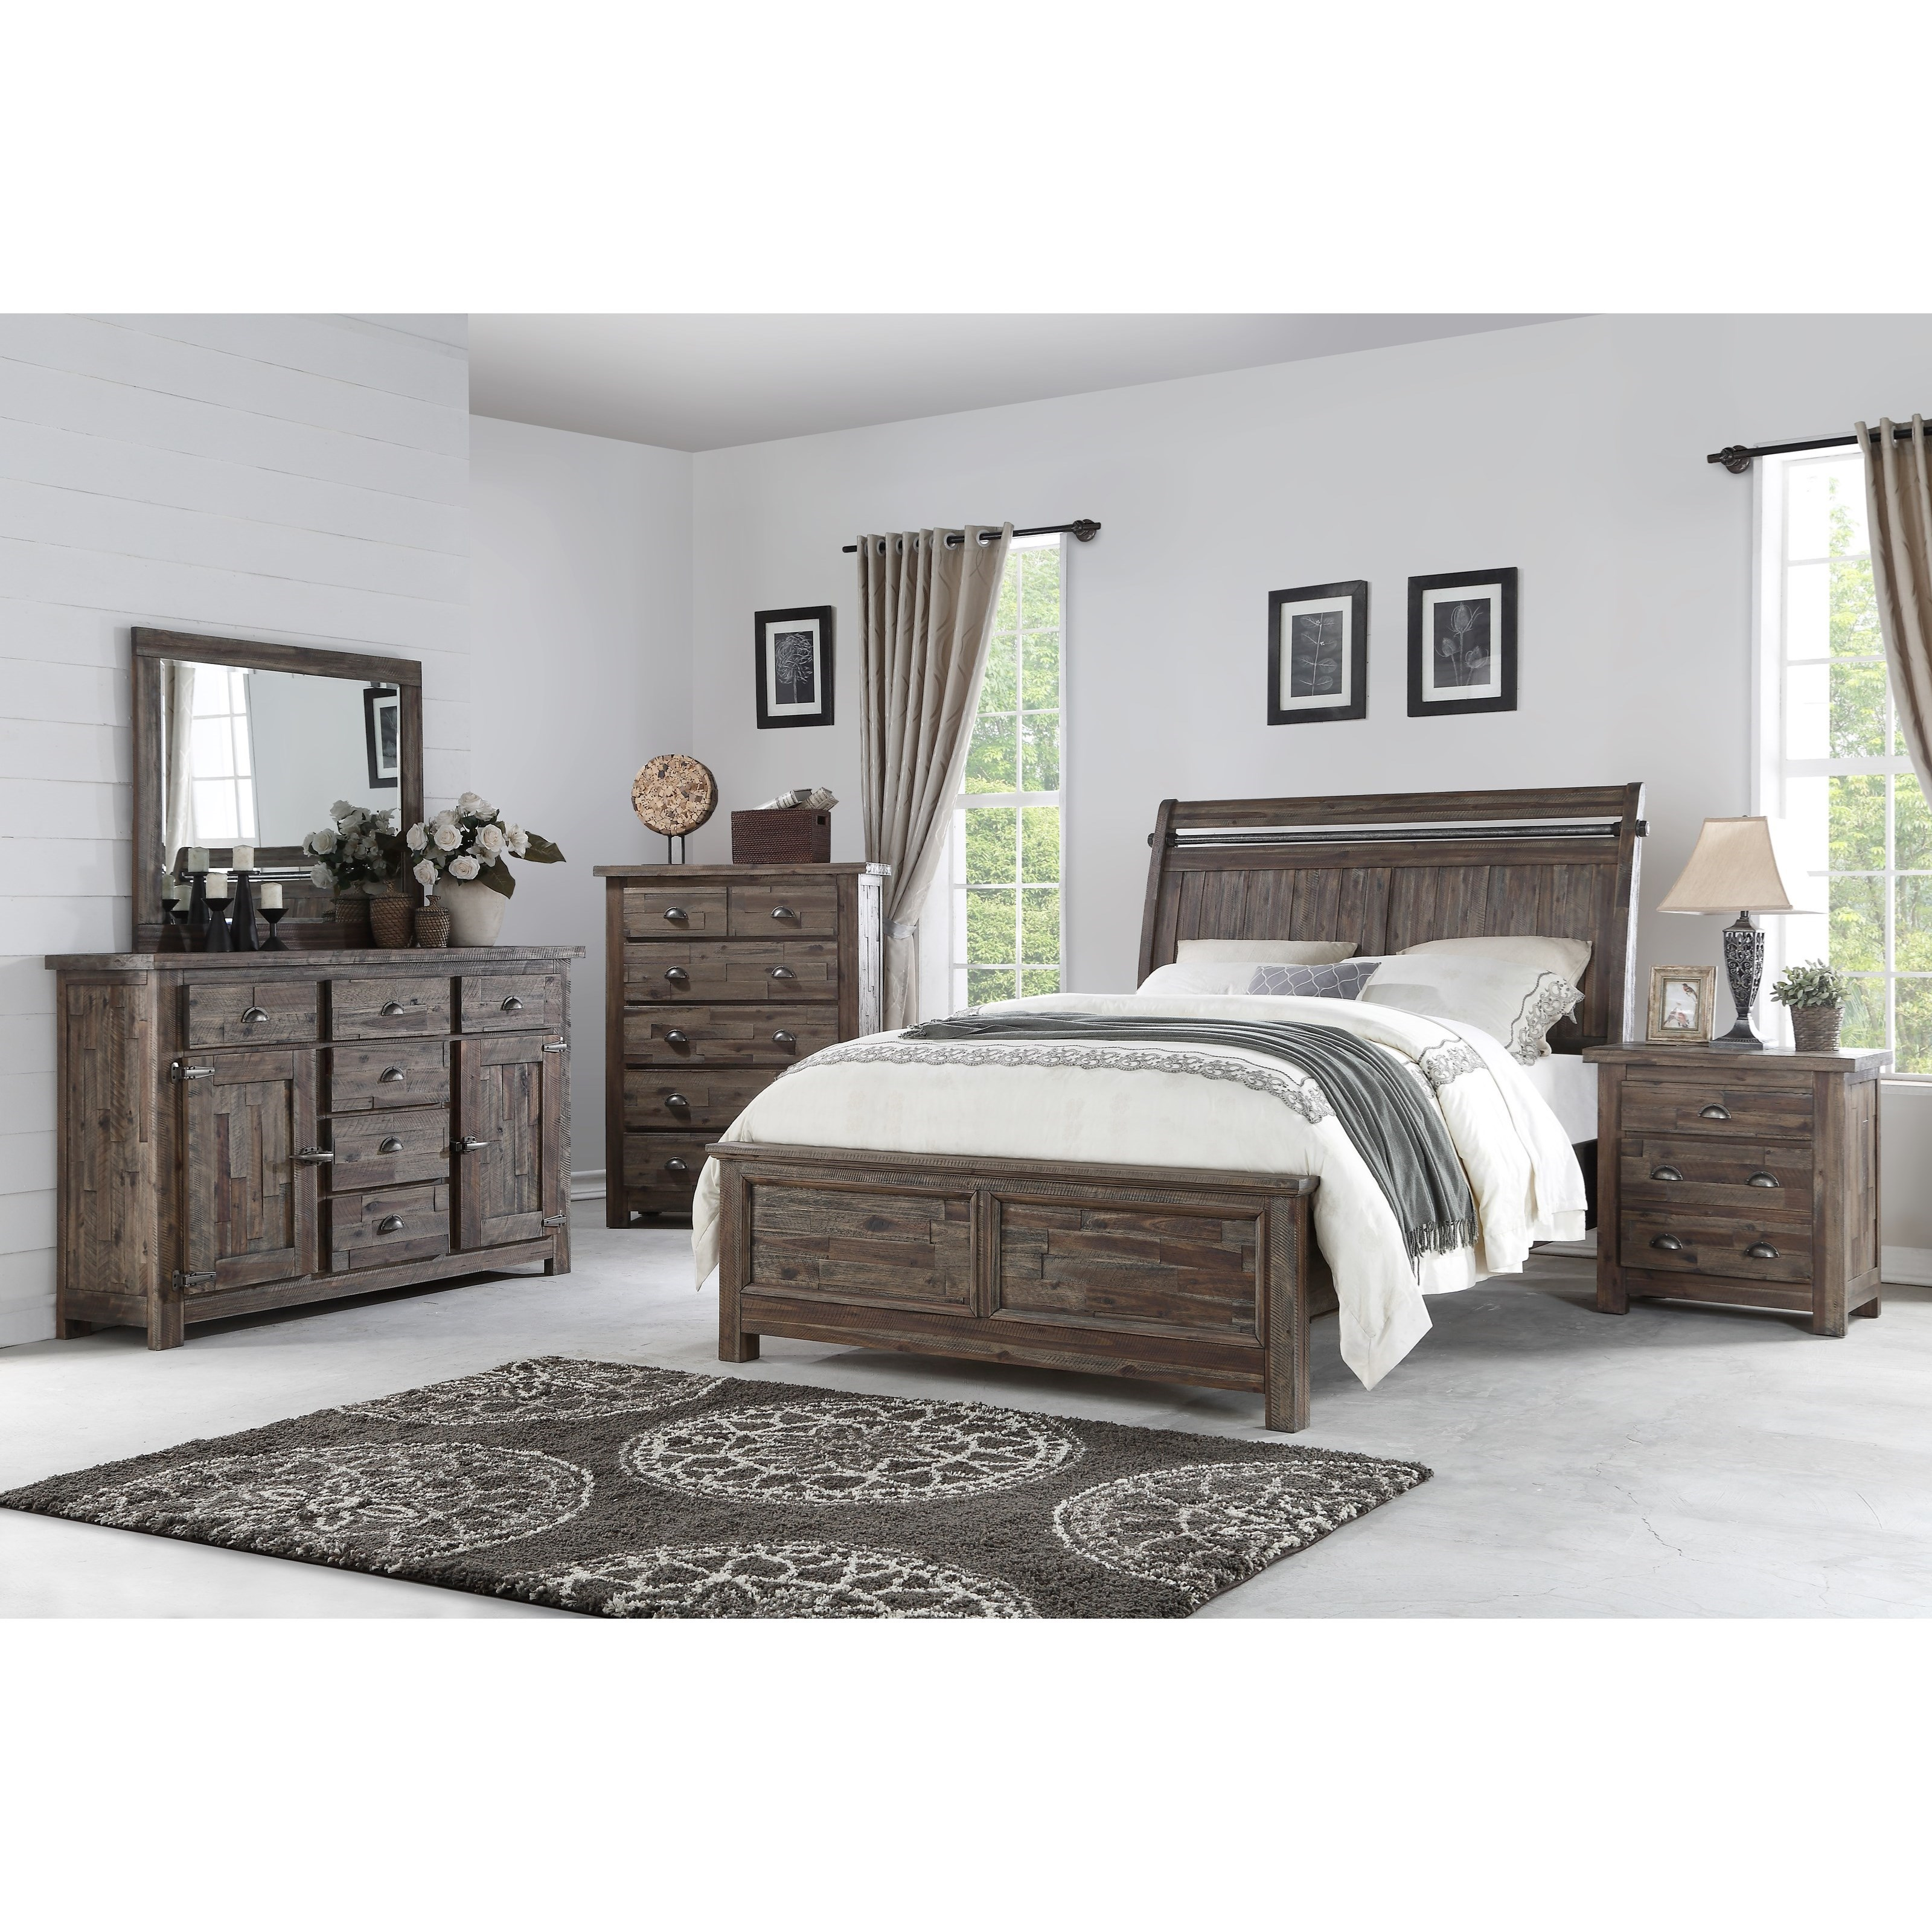 Davis International Bedroom Furniture New Classic Tuscany Park 00 7404 100 King Sleigh Bed With